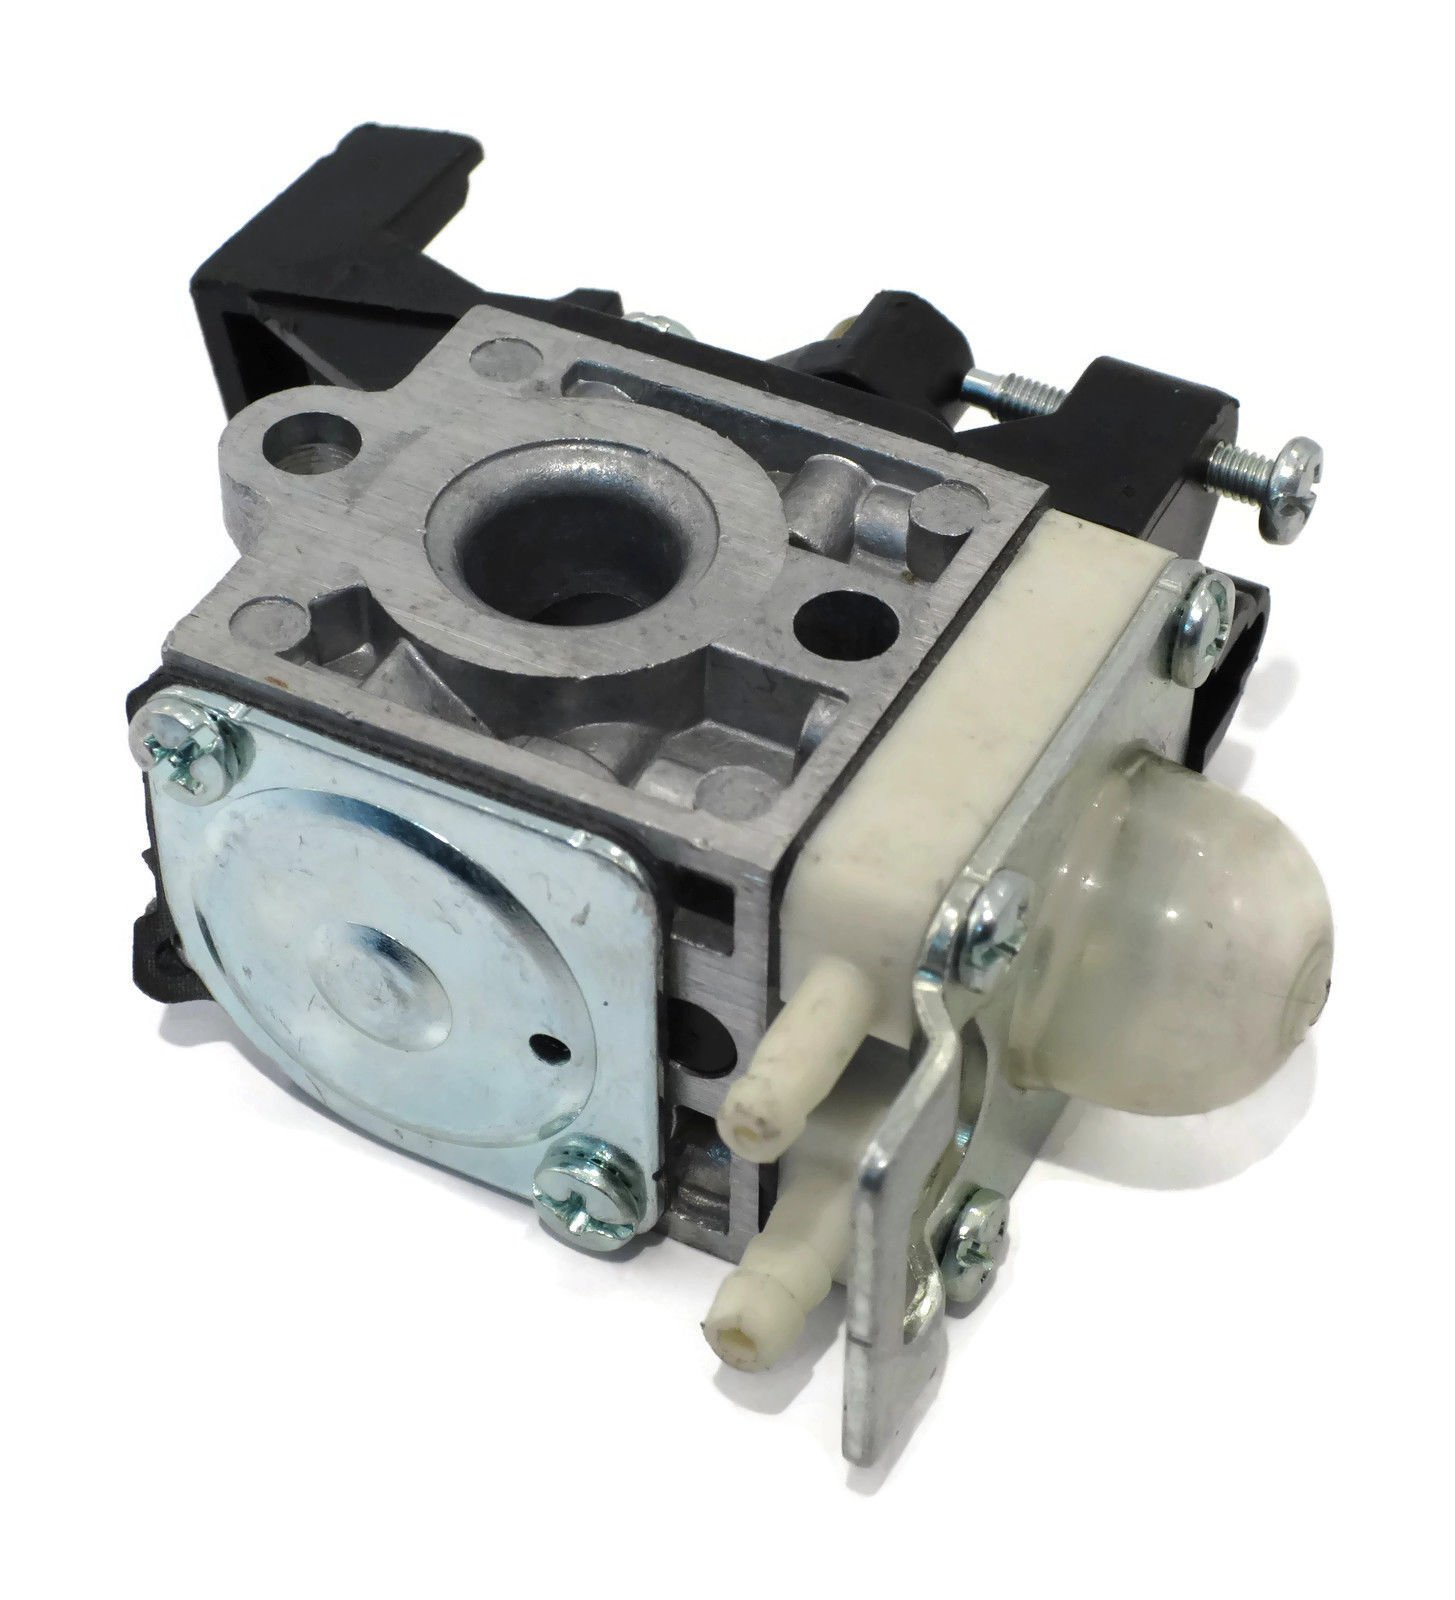 The ROP Shop Carburetor Carb for Zama RB-K93 fits Echo PPF-225 PPF-235ES PPT-235ES Pruner Saw by The ROP Shop